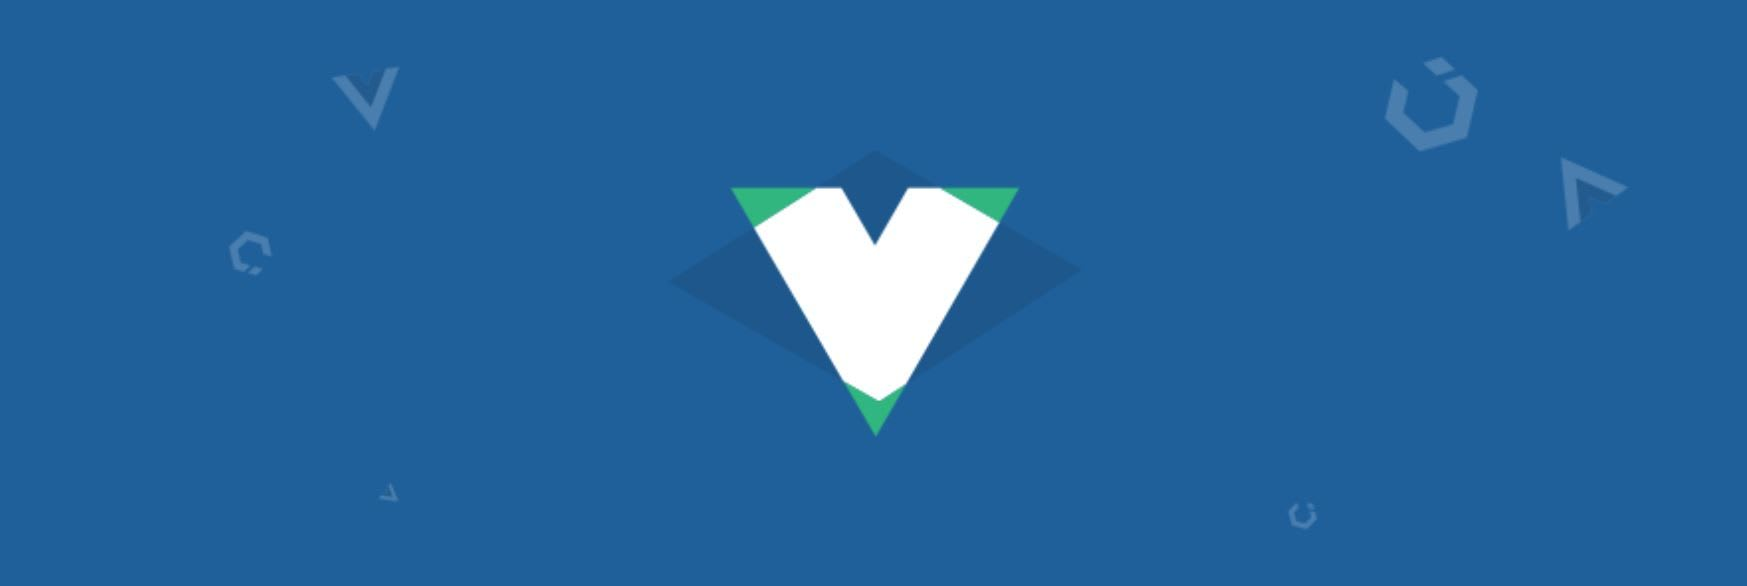 11 Top Vue js Libraries For Your App